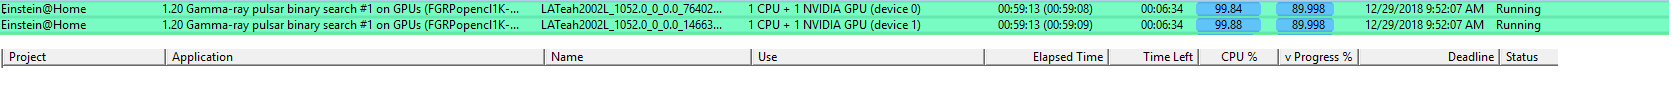 Einstein usage on xeon with nvidia